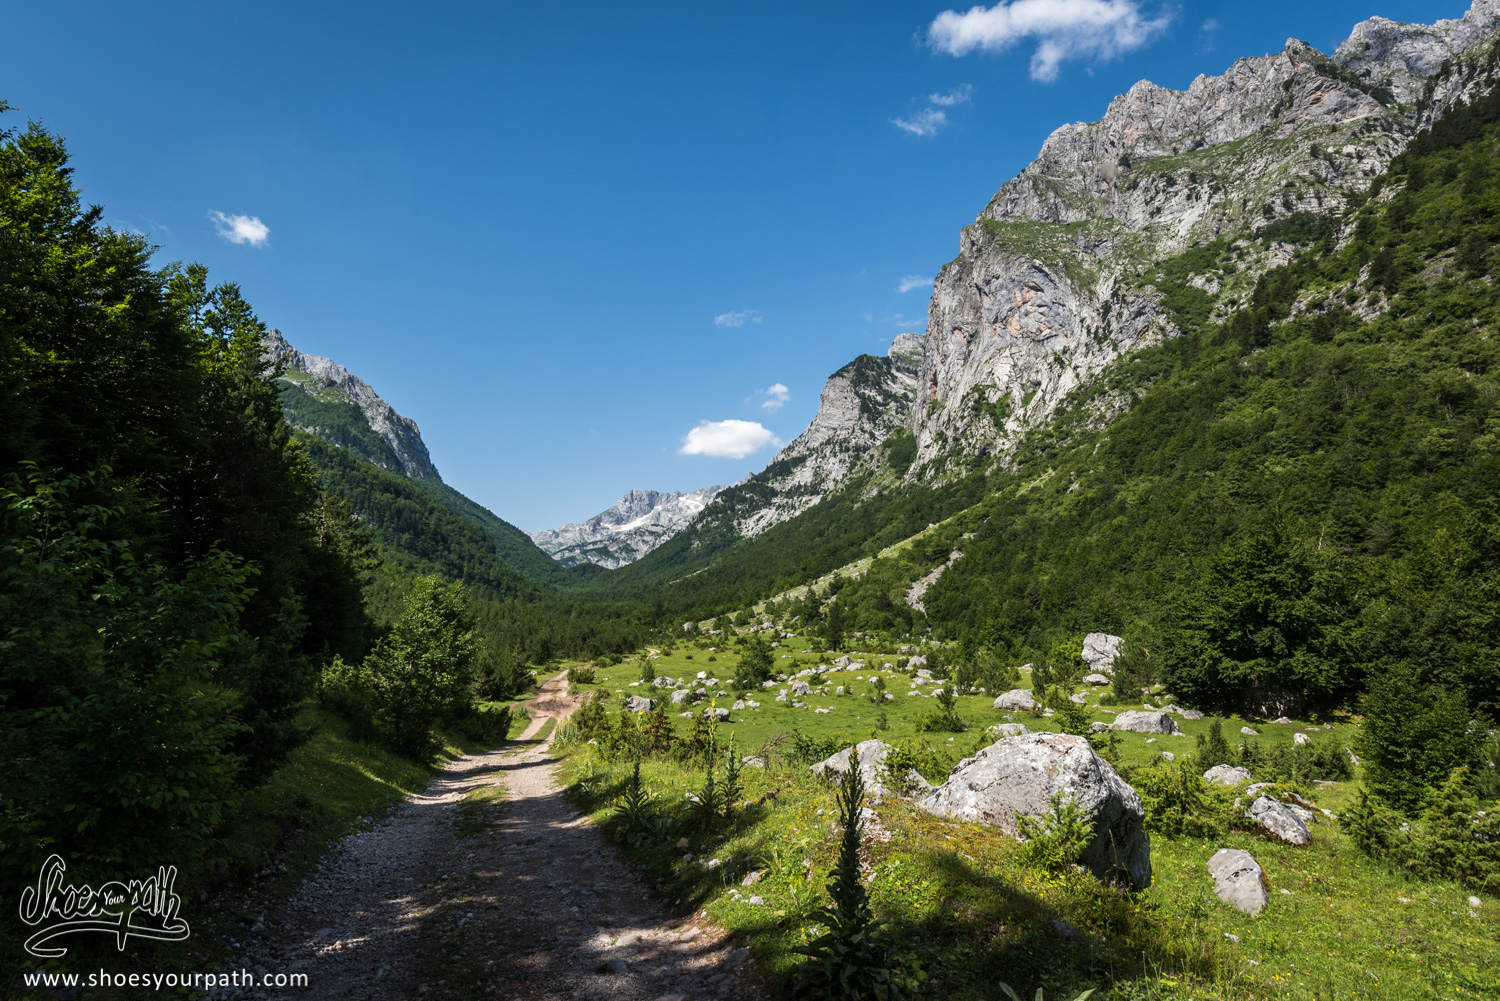 Leaving Vusanje and walking to Theth throught the Ropojana Valley - Peaks of the Balkans